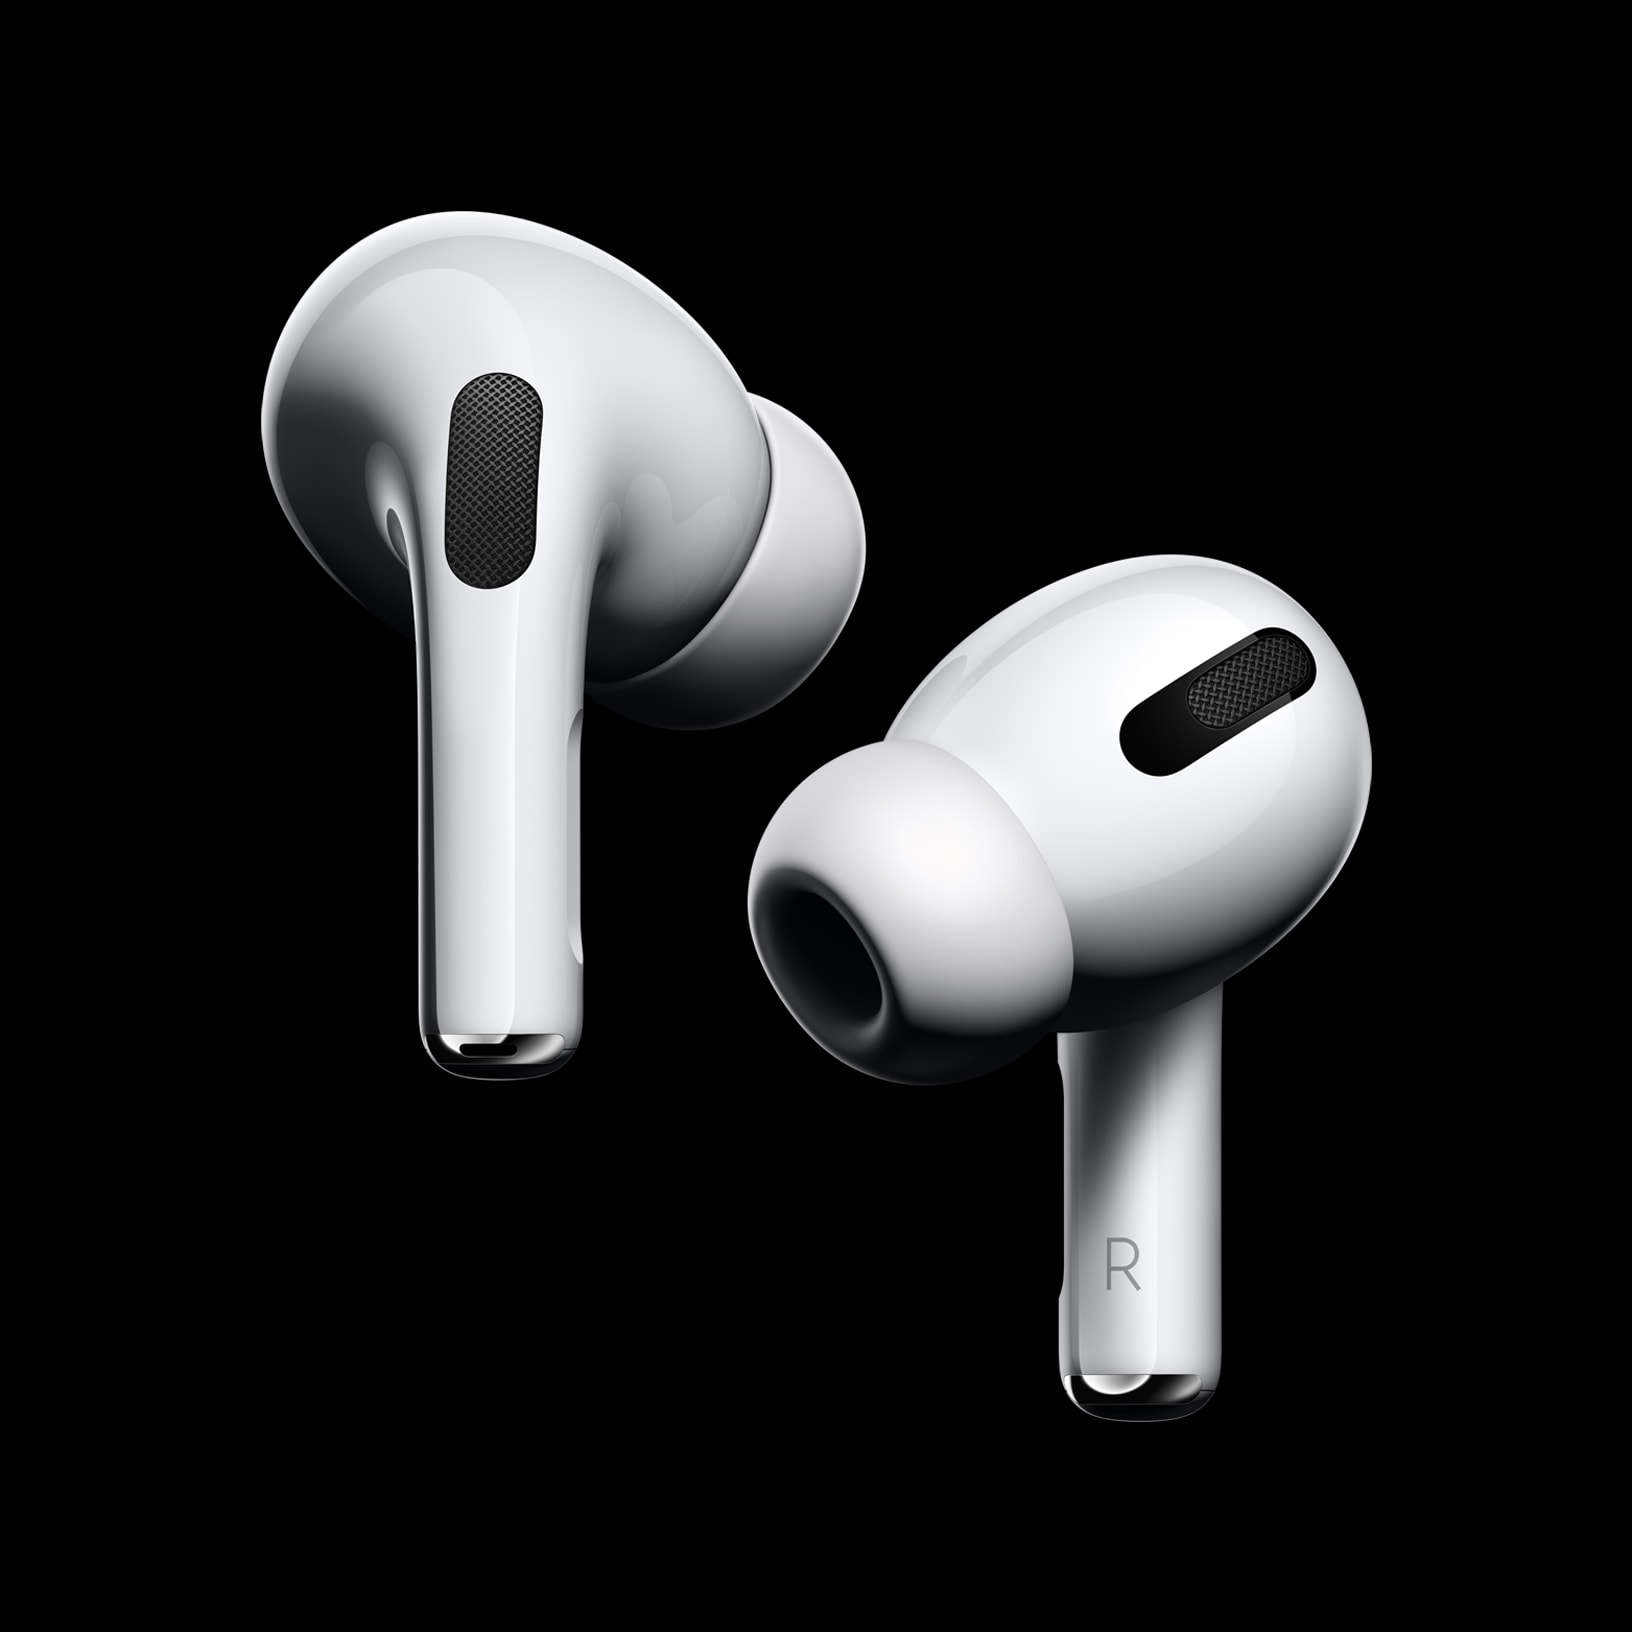 AirPods Pro undoubtedly will become a big hit this Christmas.